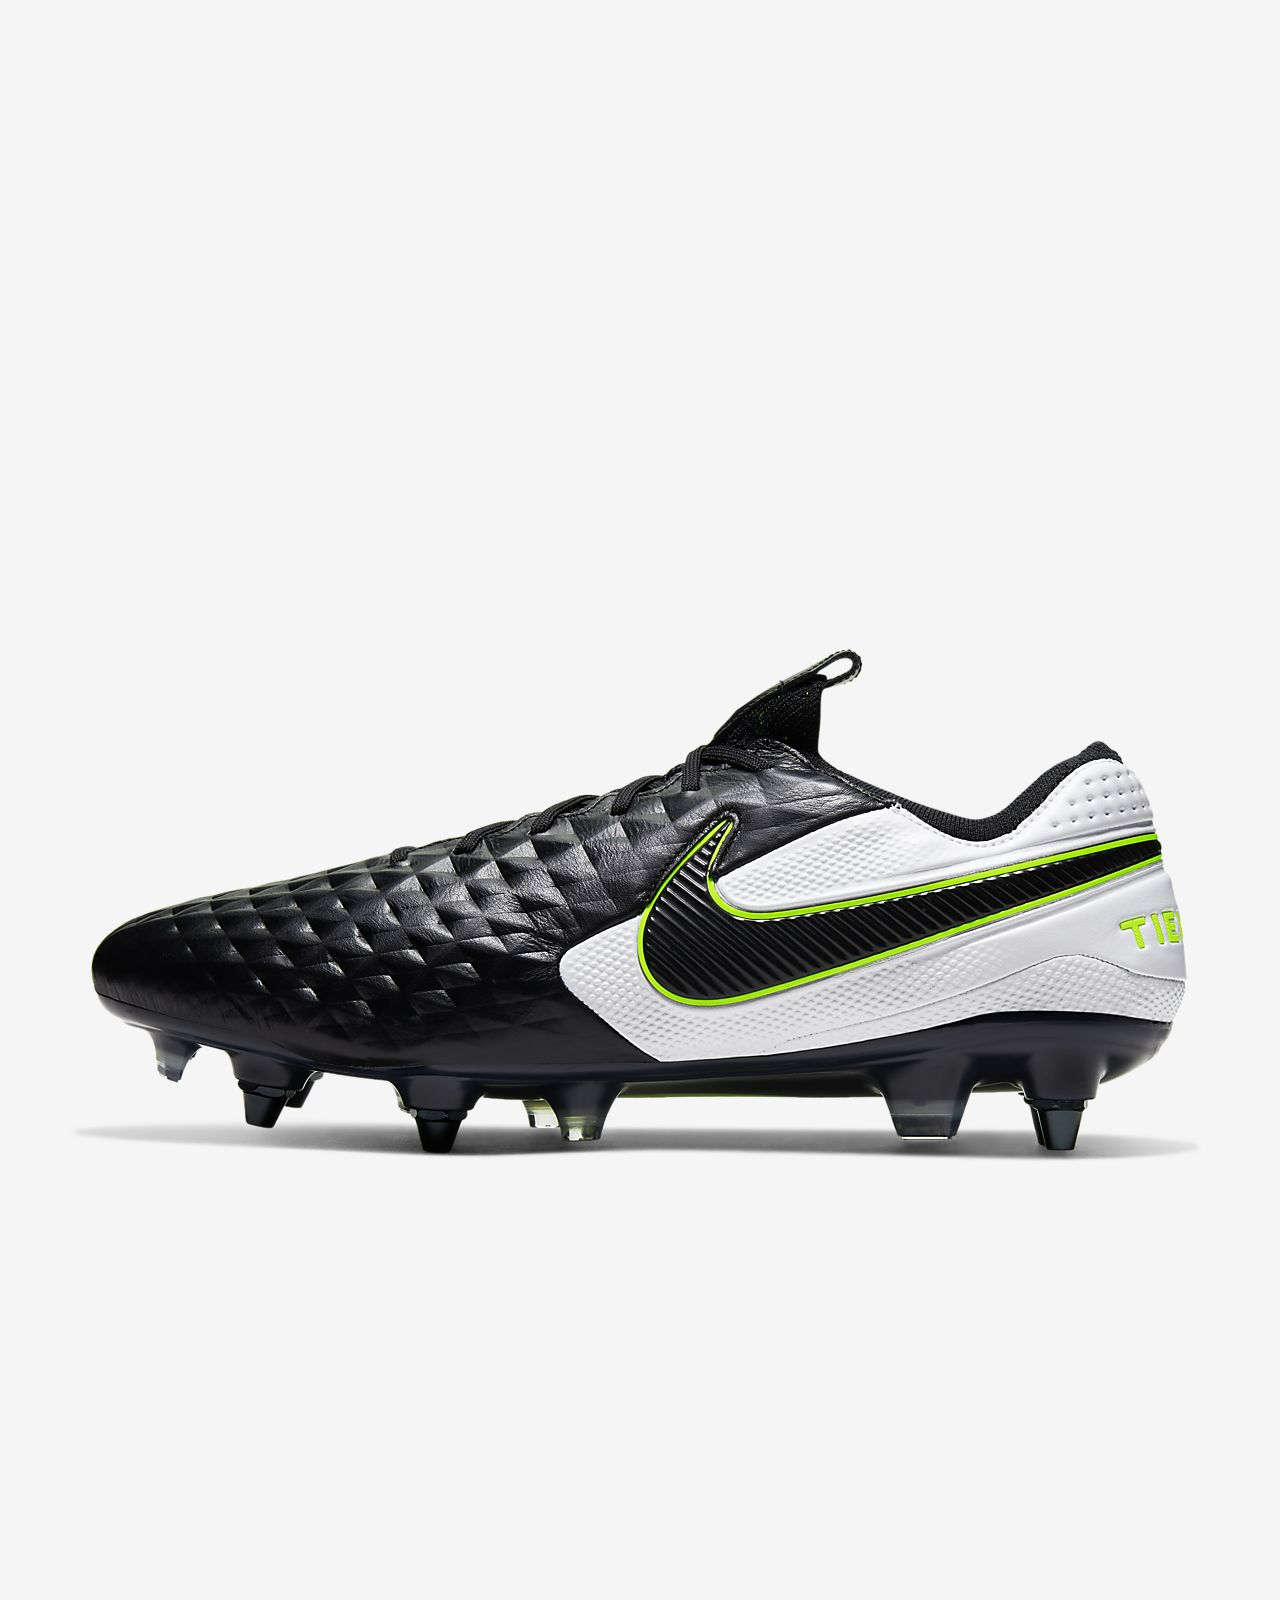 Nike Tiempo Legend 8 Elite SG-PRO Anti-Clog Traction Soft-Ground Soccer Cleat